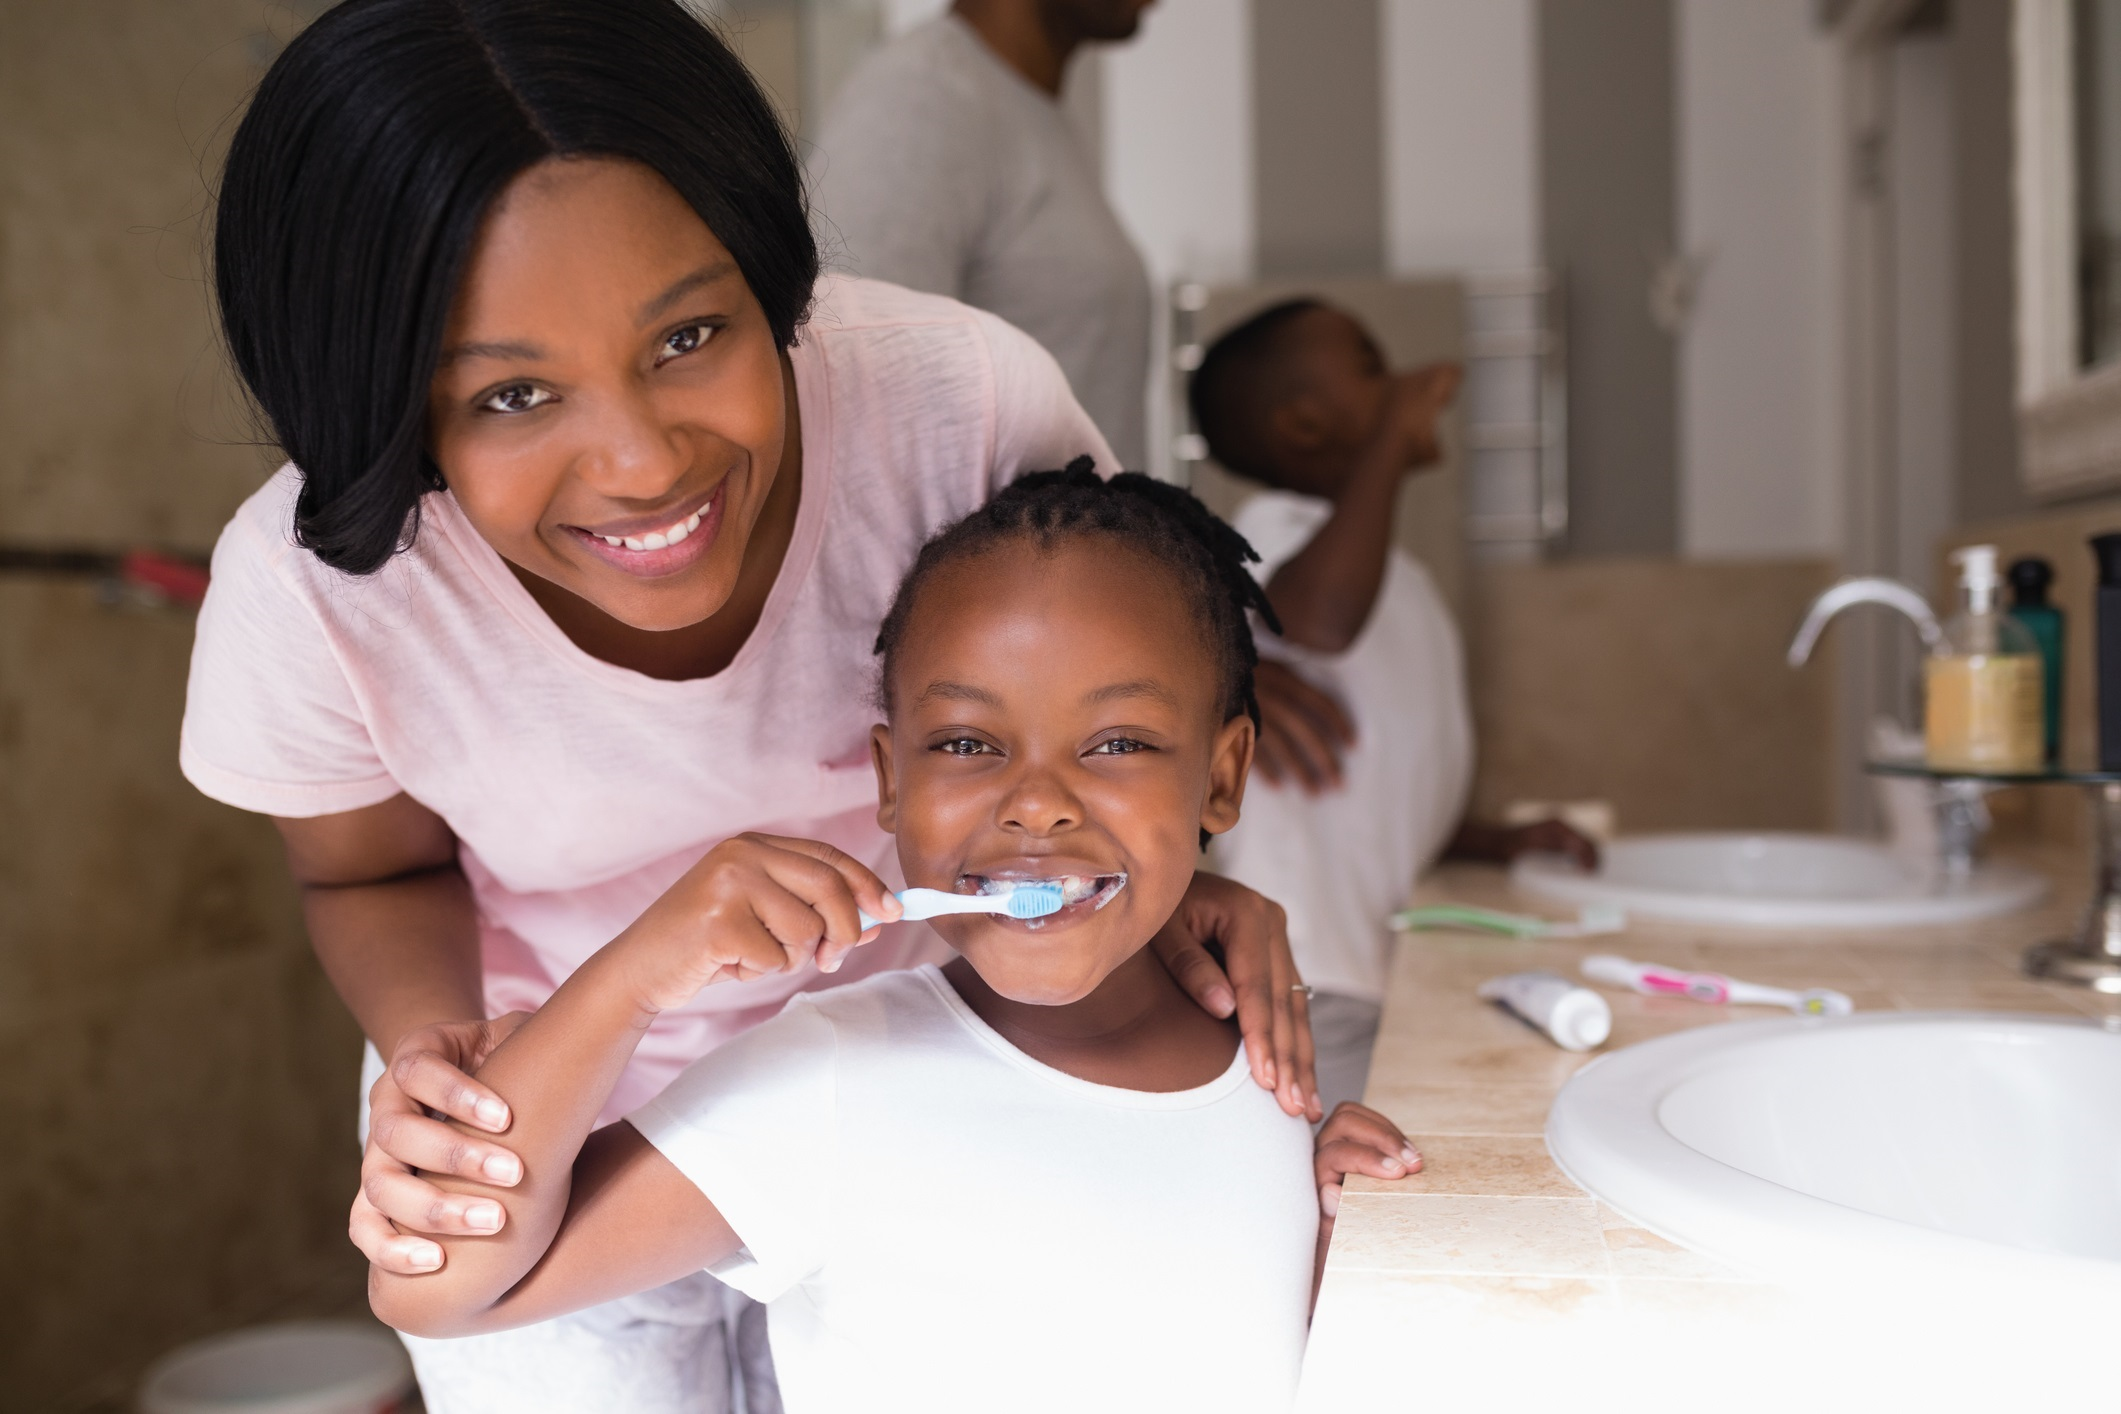 Give your child a healthy mouth for life.